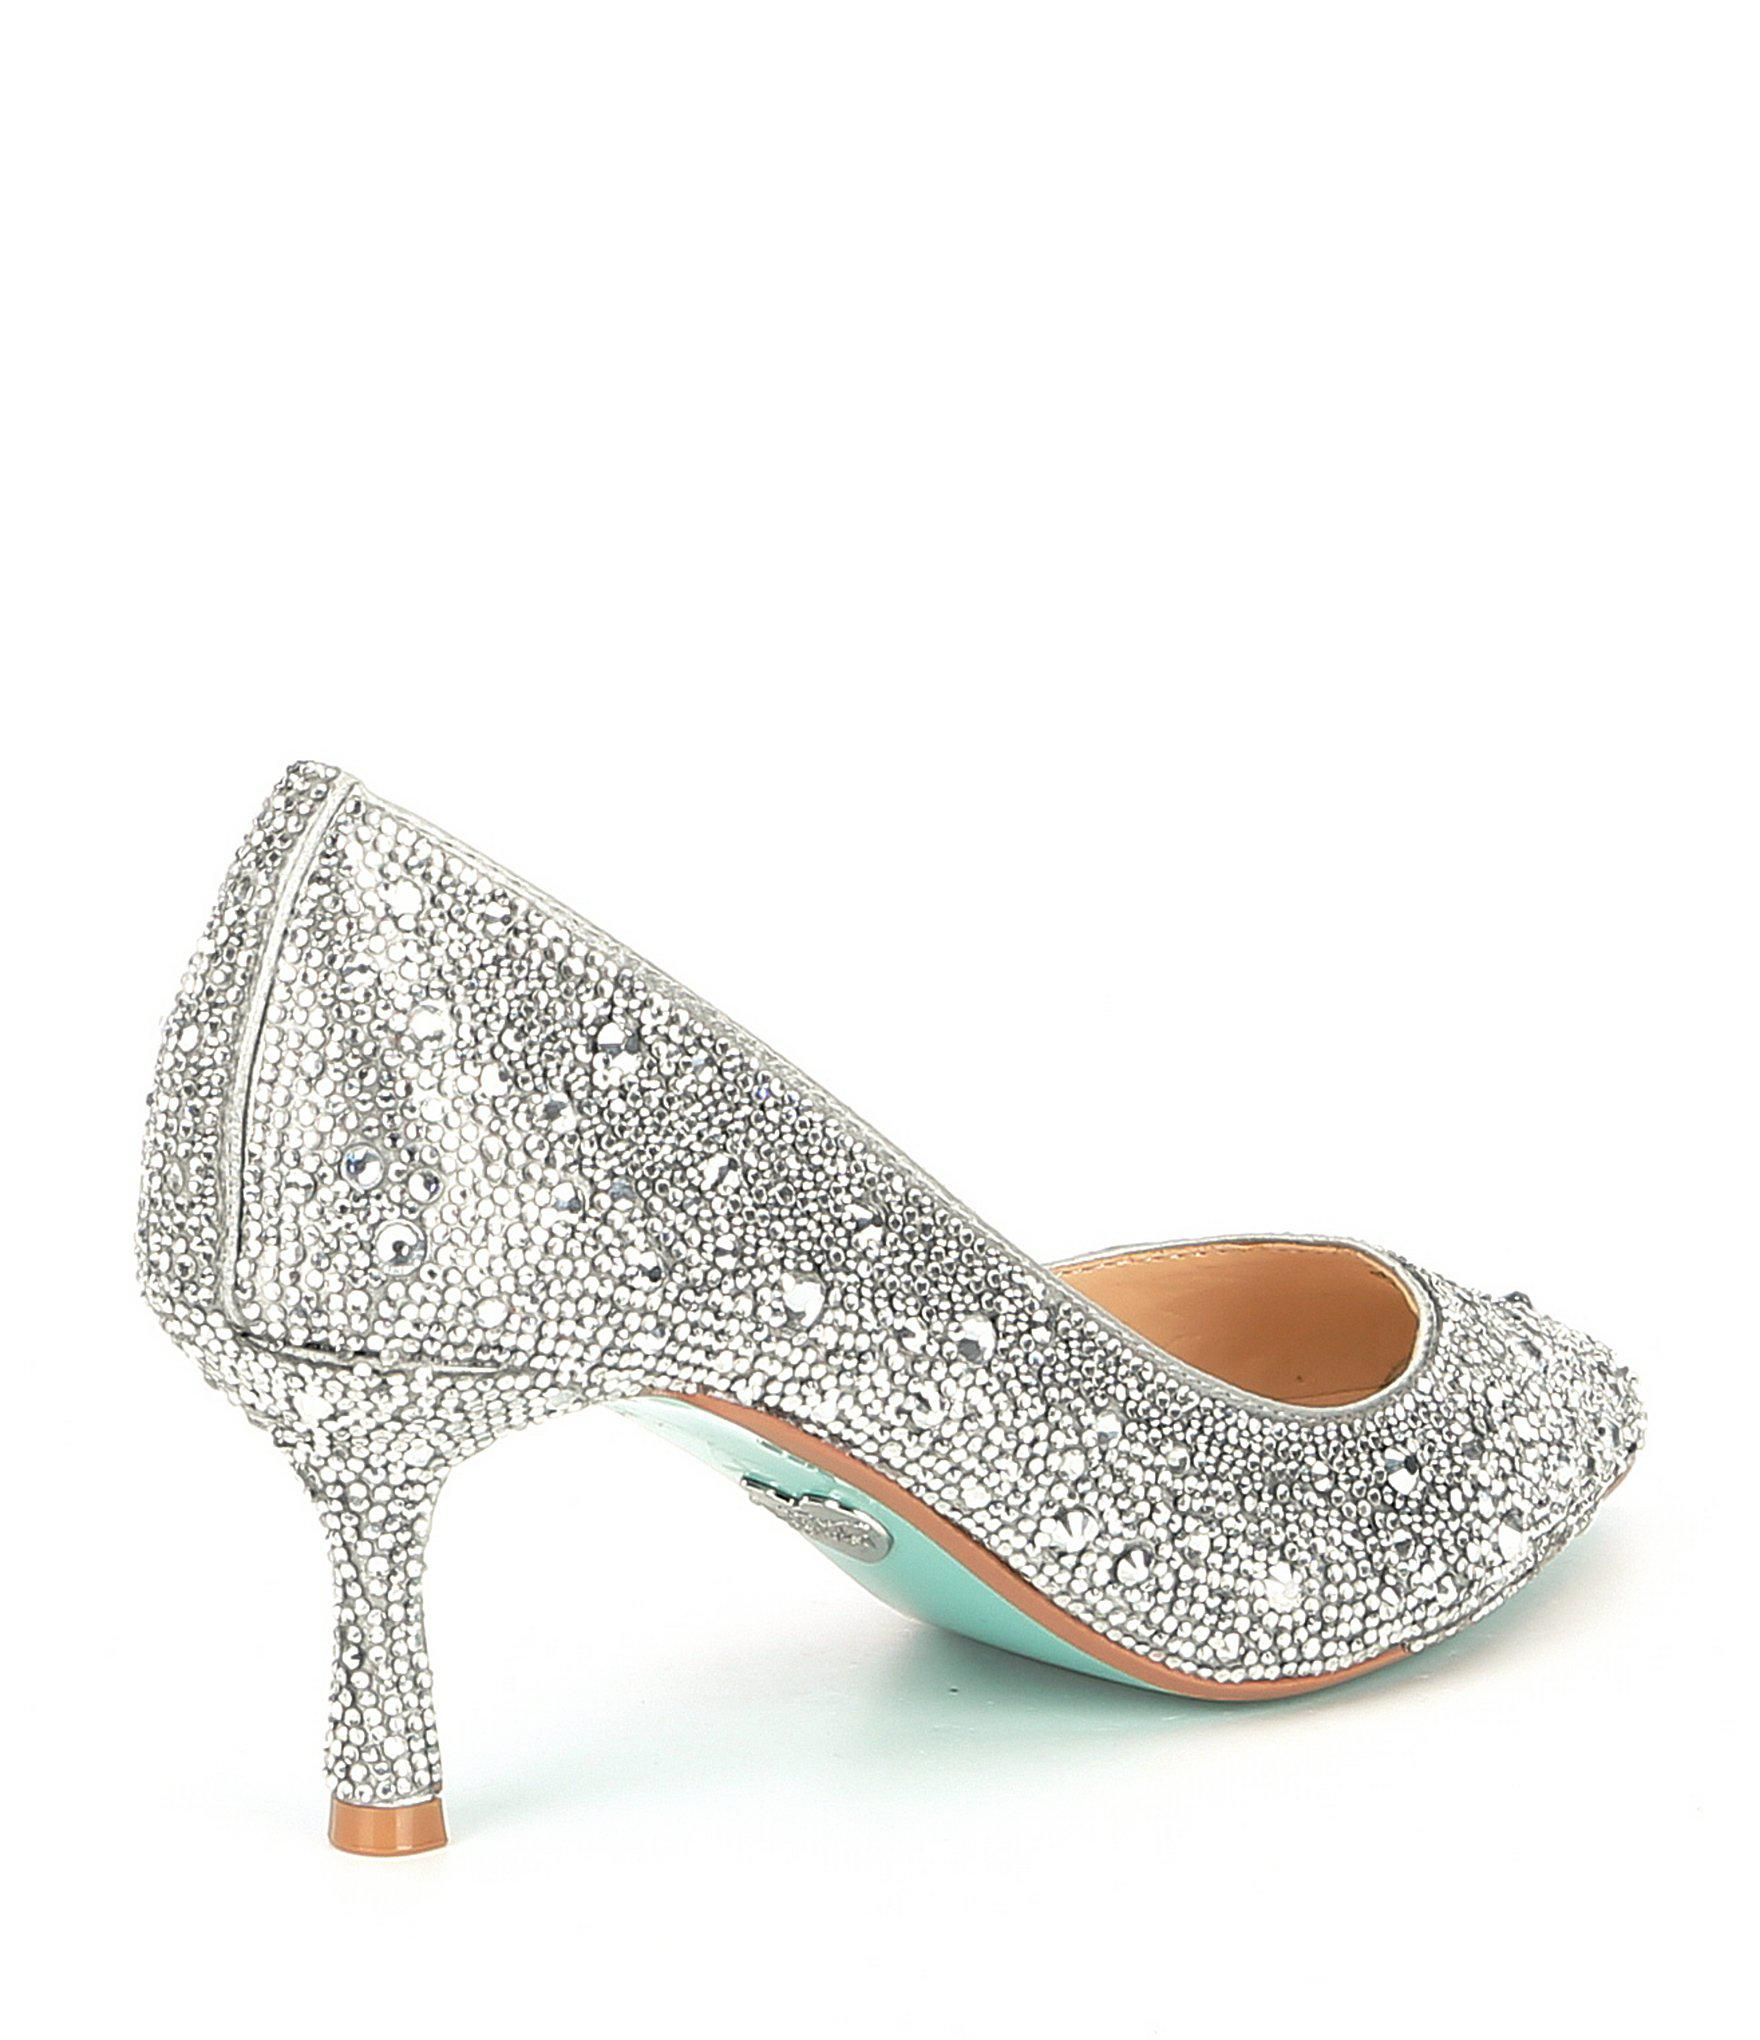 a8be9bf7500 Betsey Johnson - Metallic Blue By Jora Glitter Jeweled Kitten Heel Pumps -  Lyst. View fullscreen